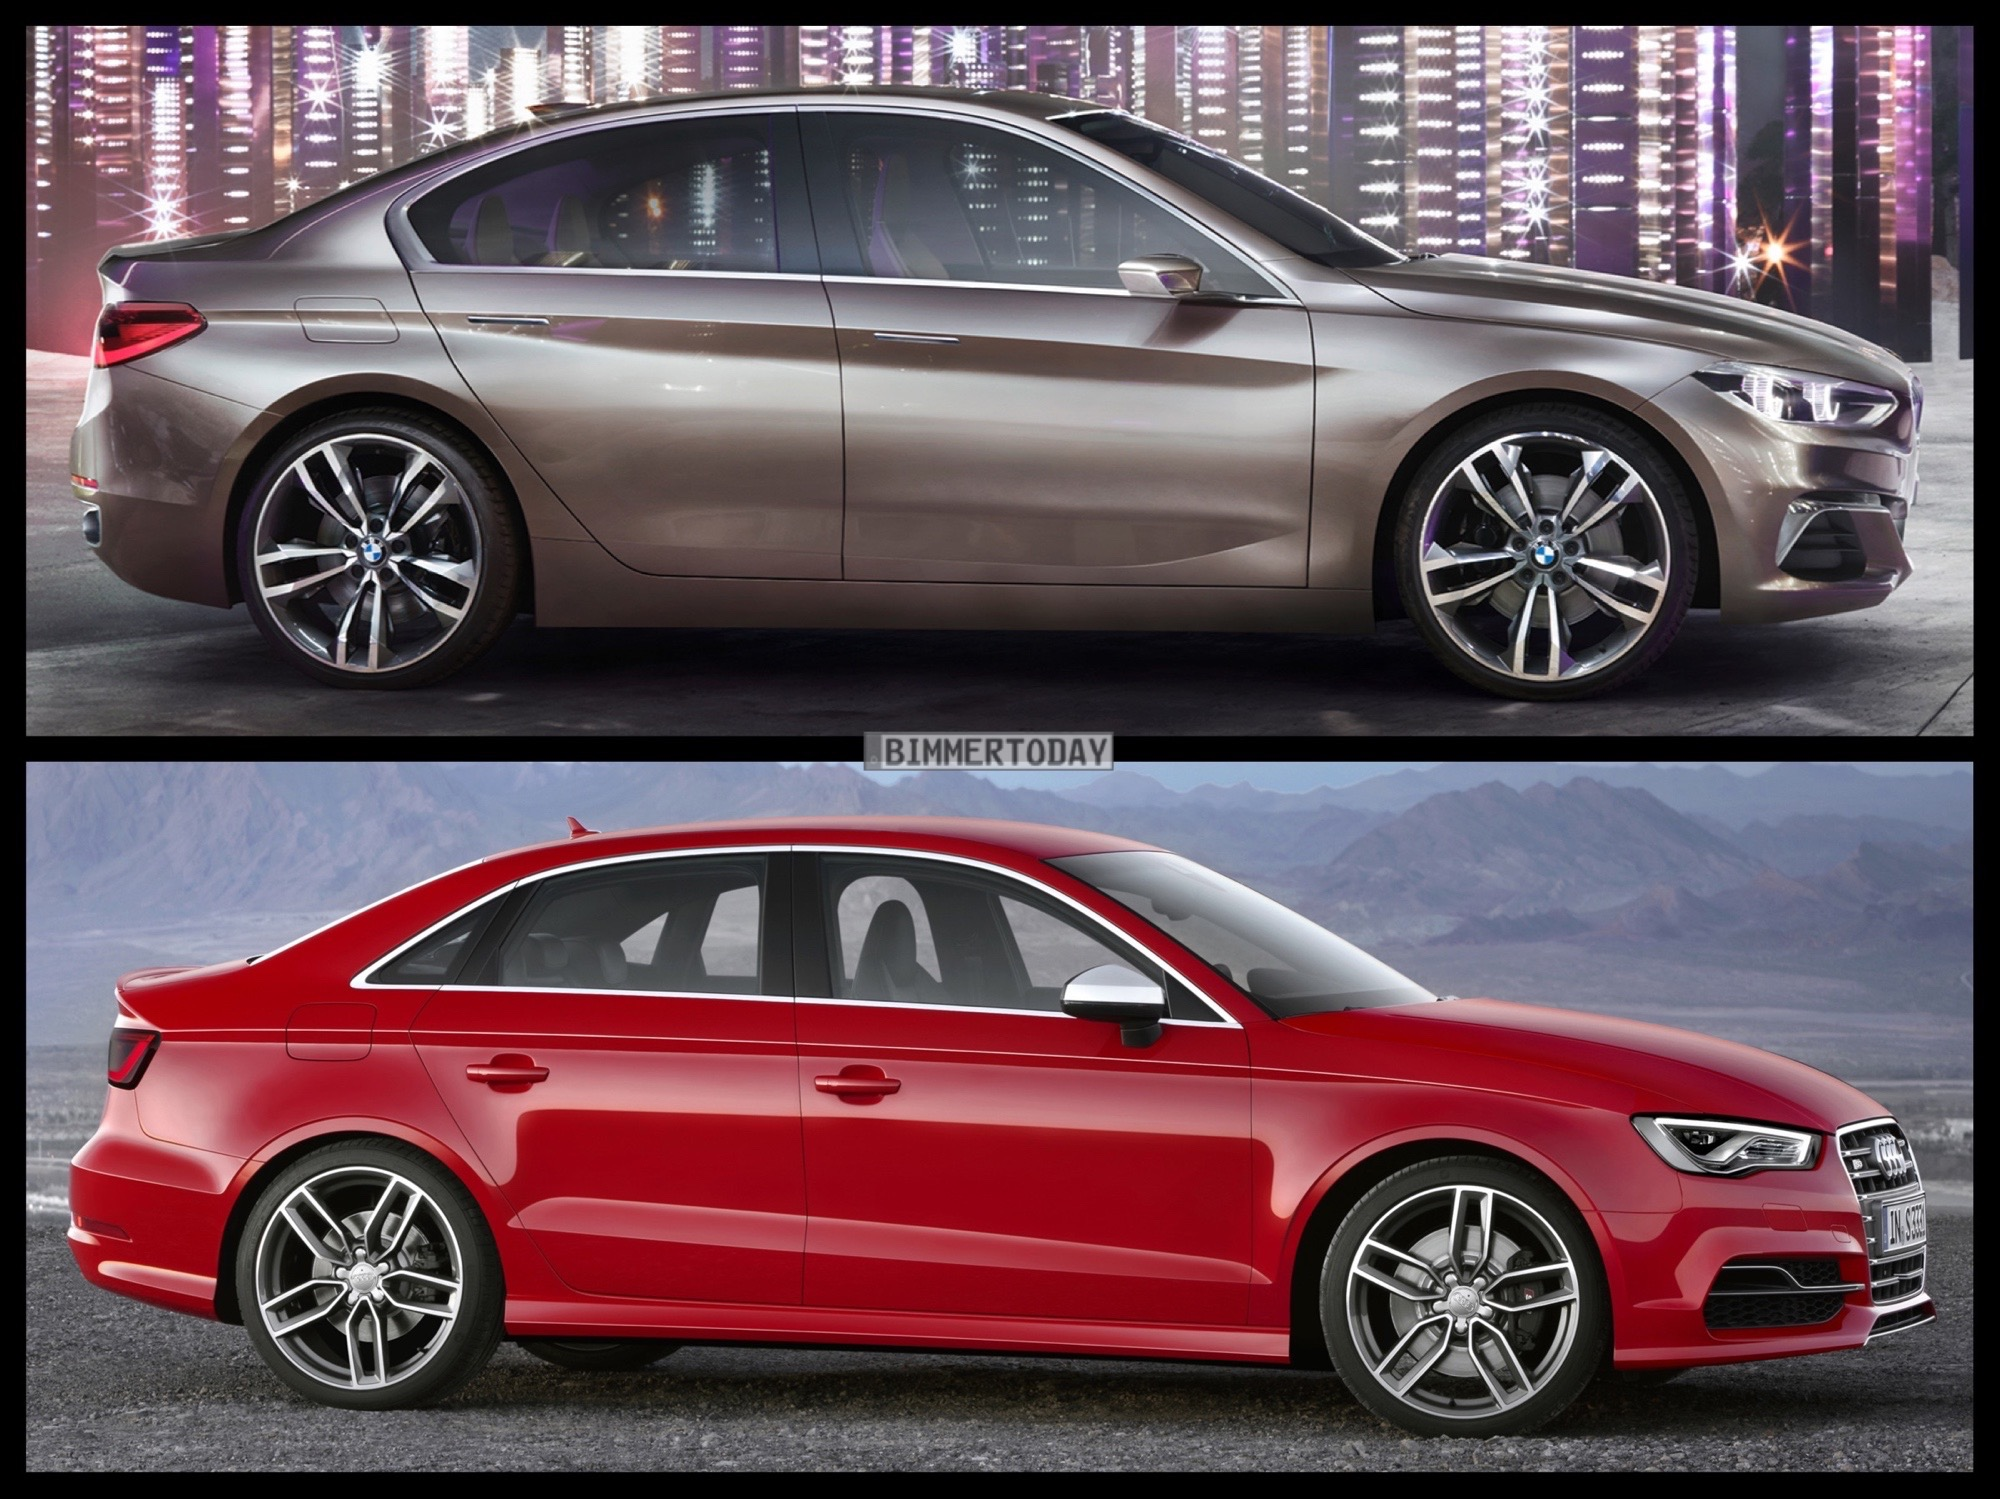 Image Comparison: BMW 1 Series Sedan vs Audi A3